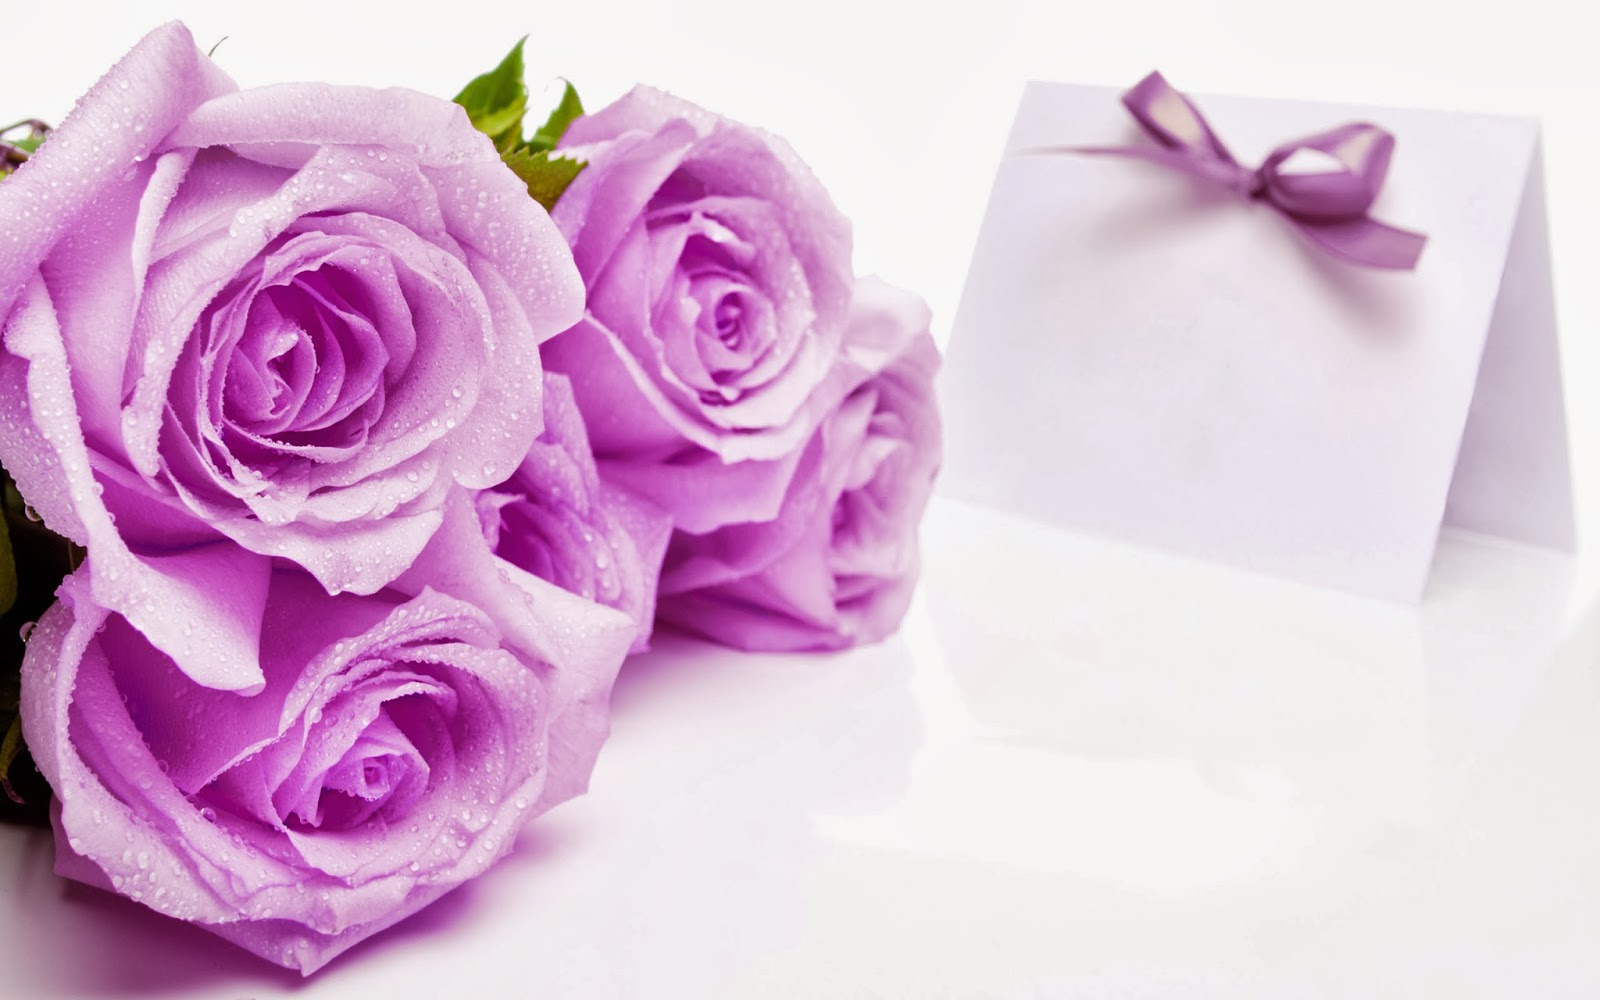 Purple-Rose-Greeting-card-HD-Template-image-free-download.jpg